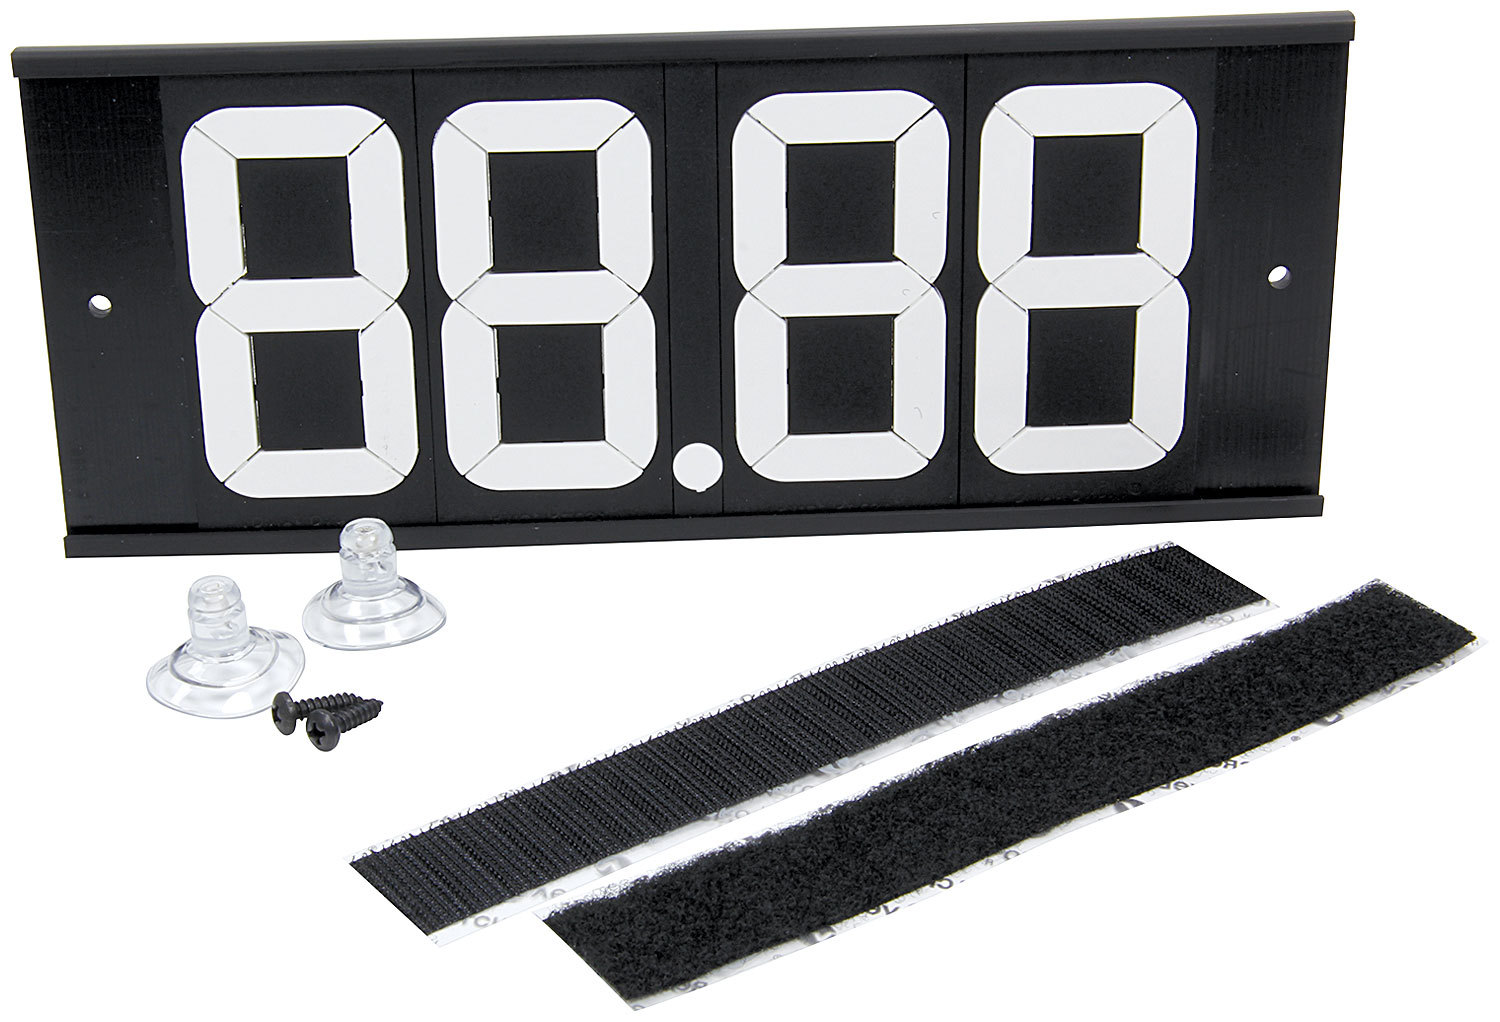 Allstar Performance Dial-In Board 4 Digit w/ Suction Cups and Velcro